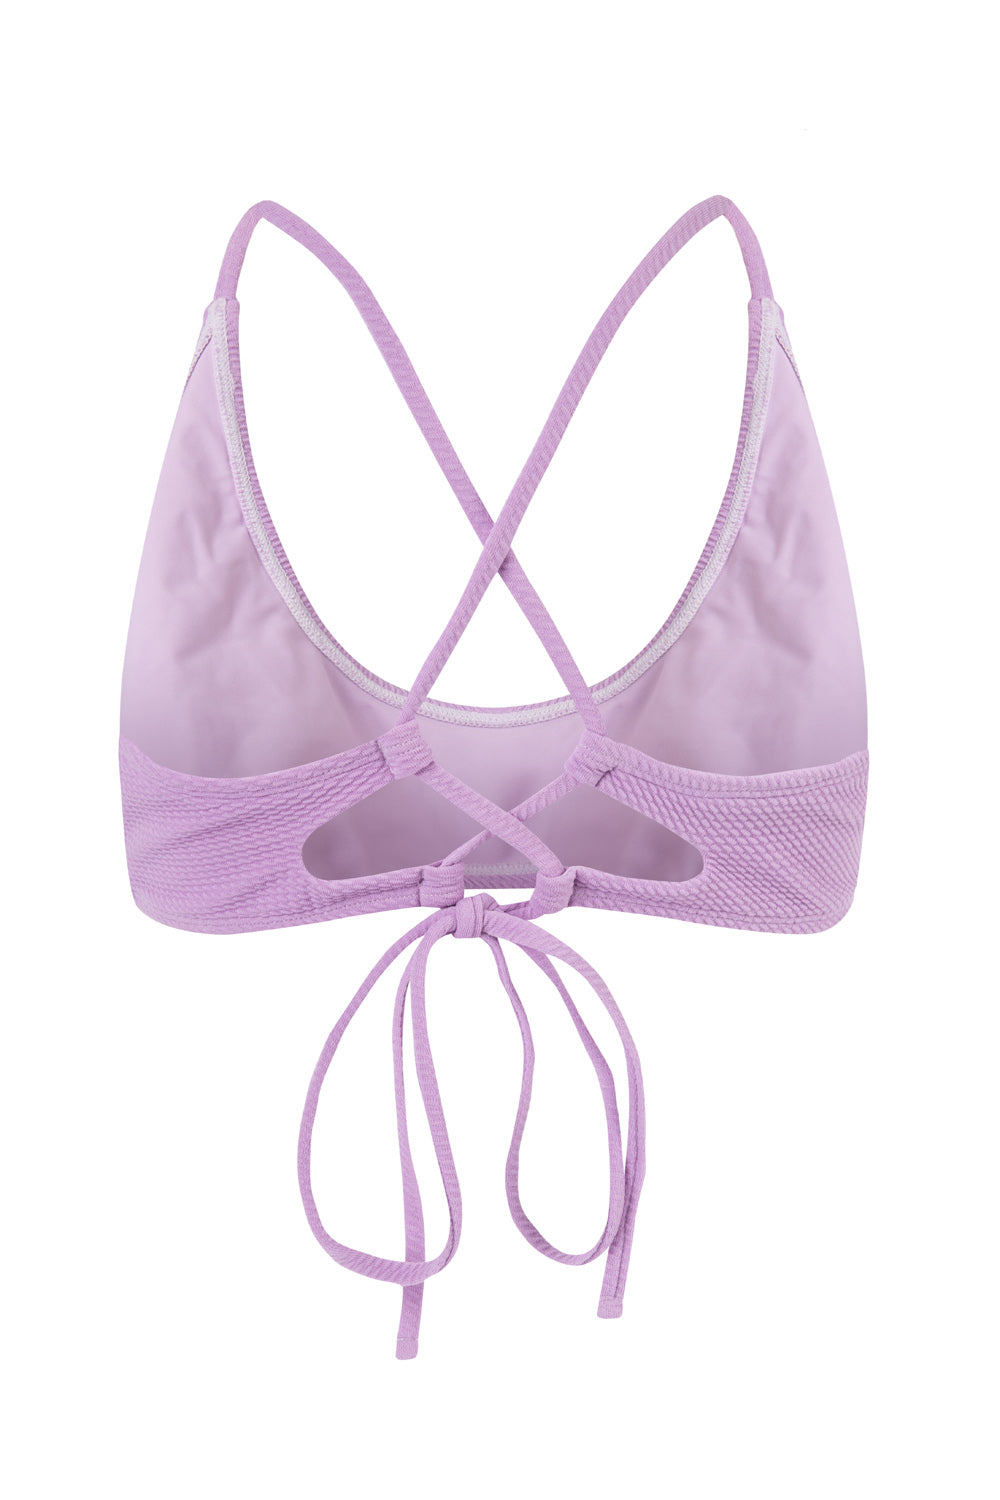 The Lilac Witt Crop Top